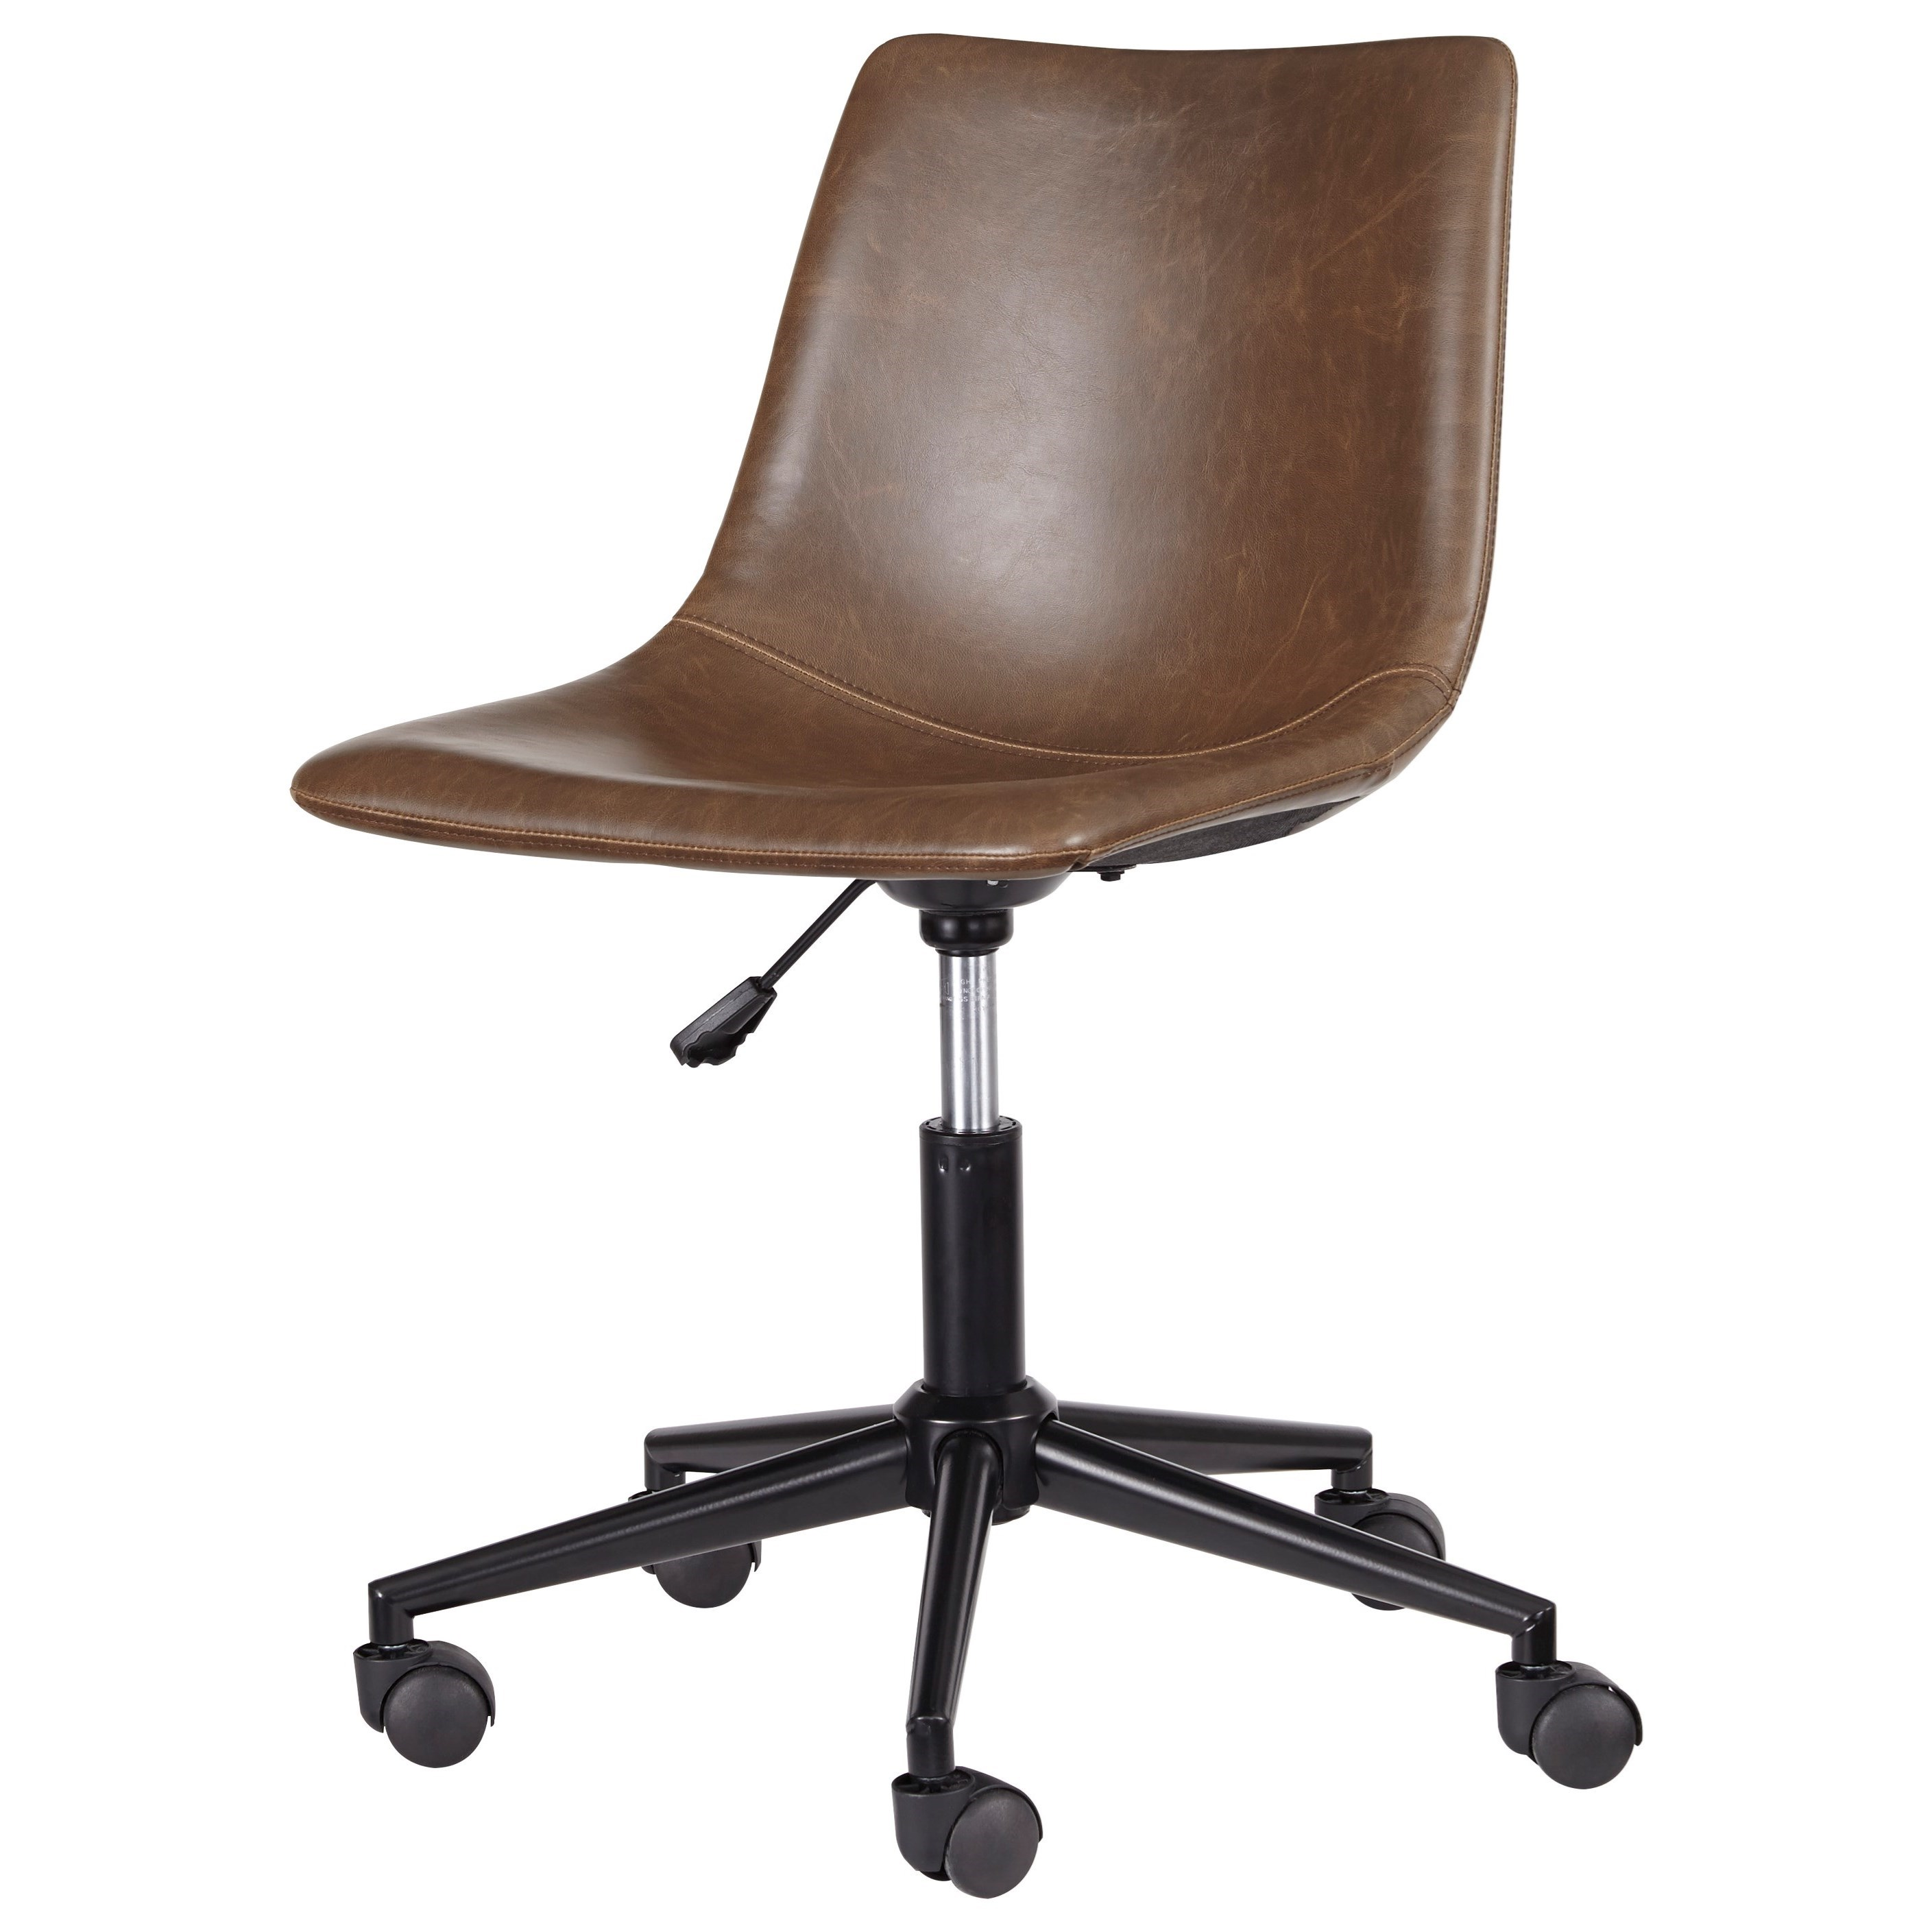 Signature design by ashley office chair program h200 01 for Chair with swivel desk